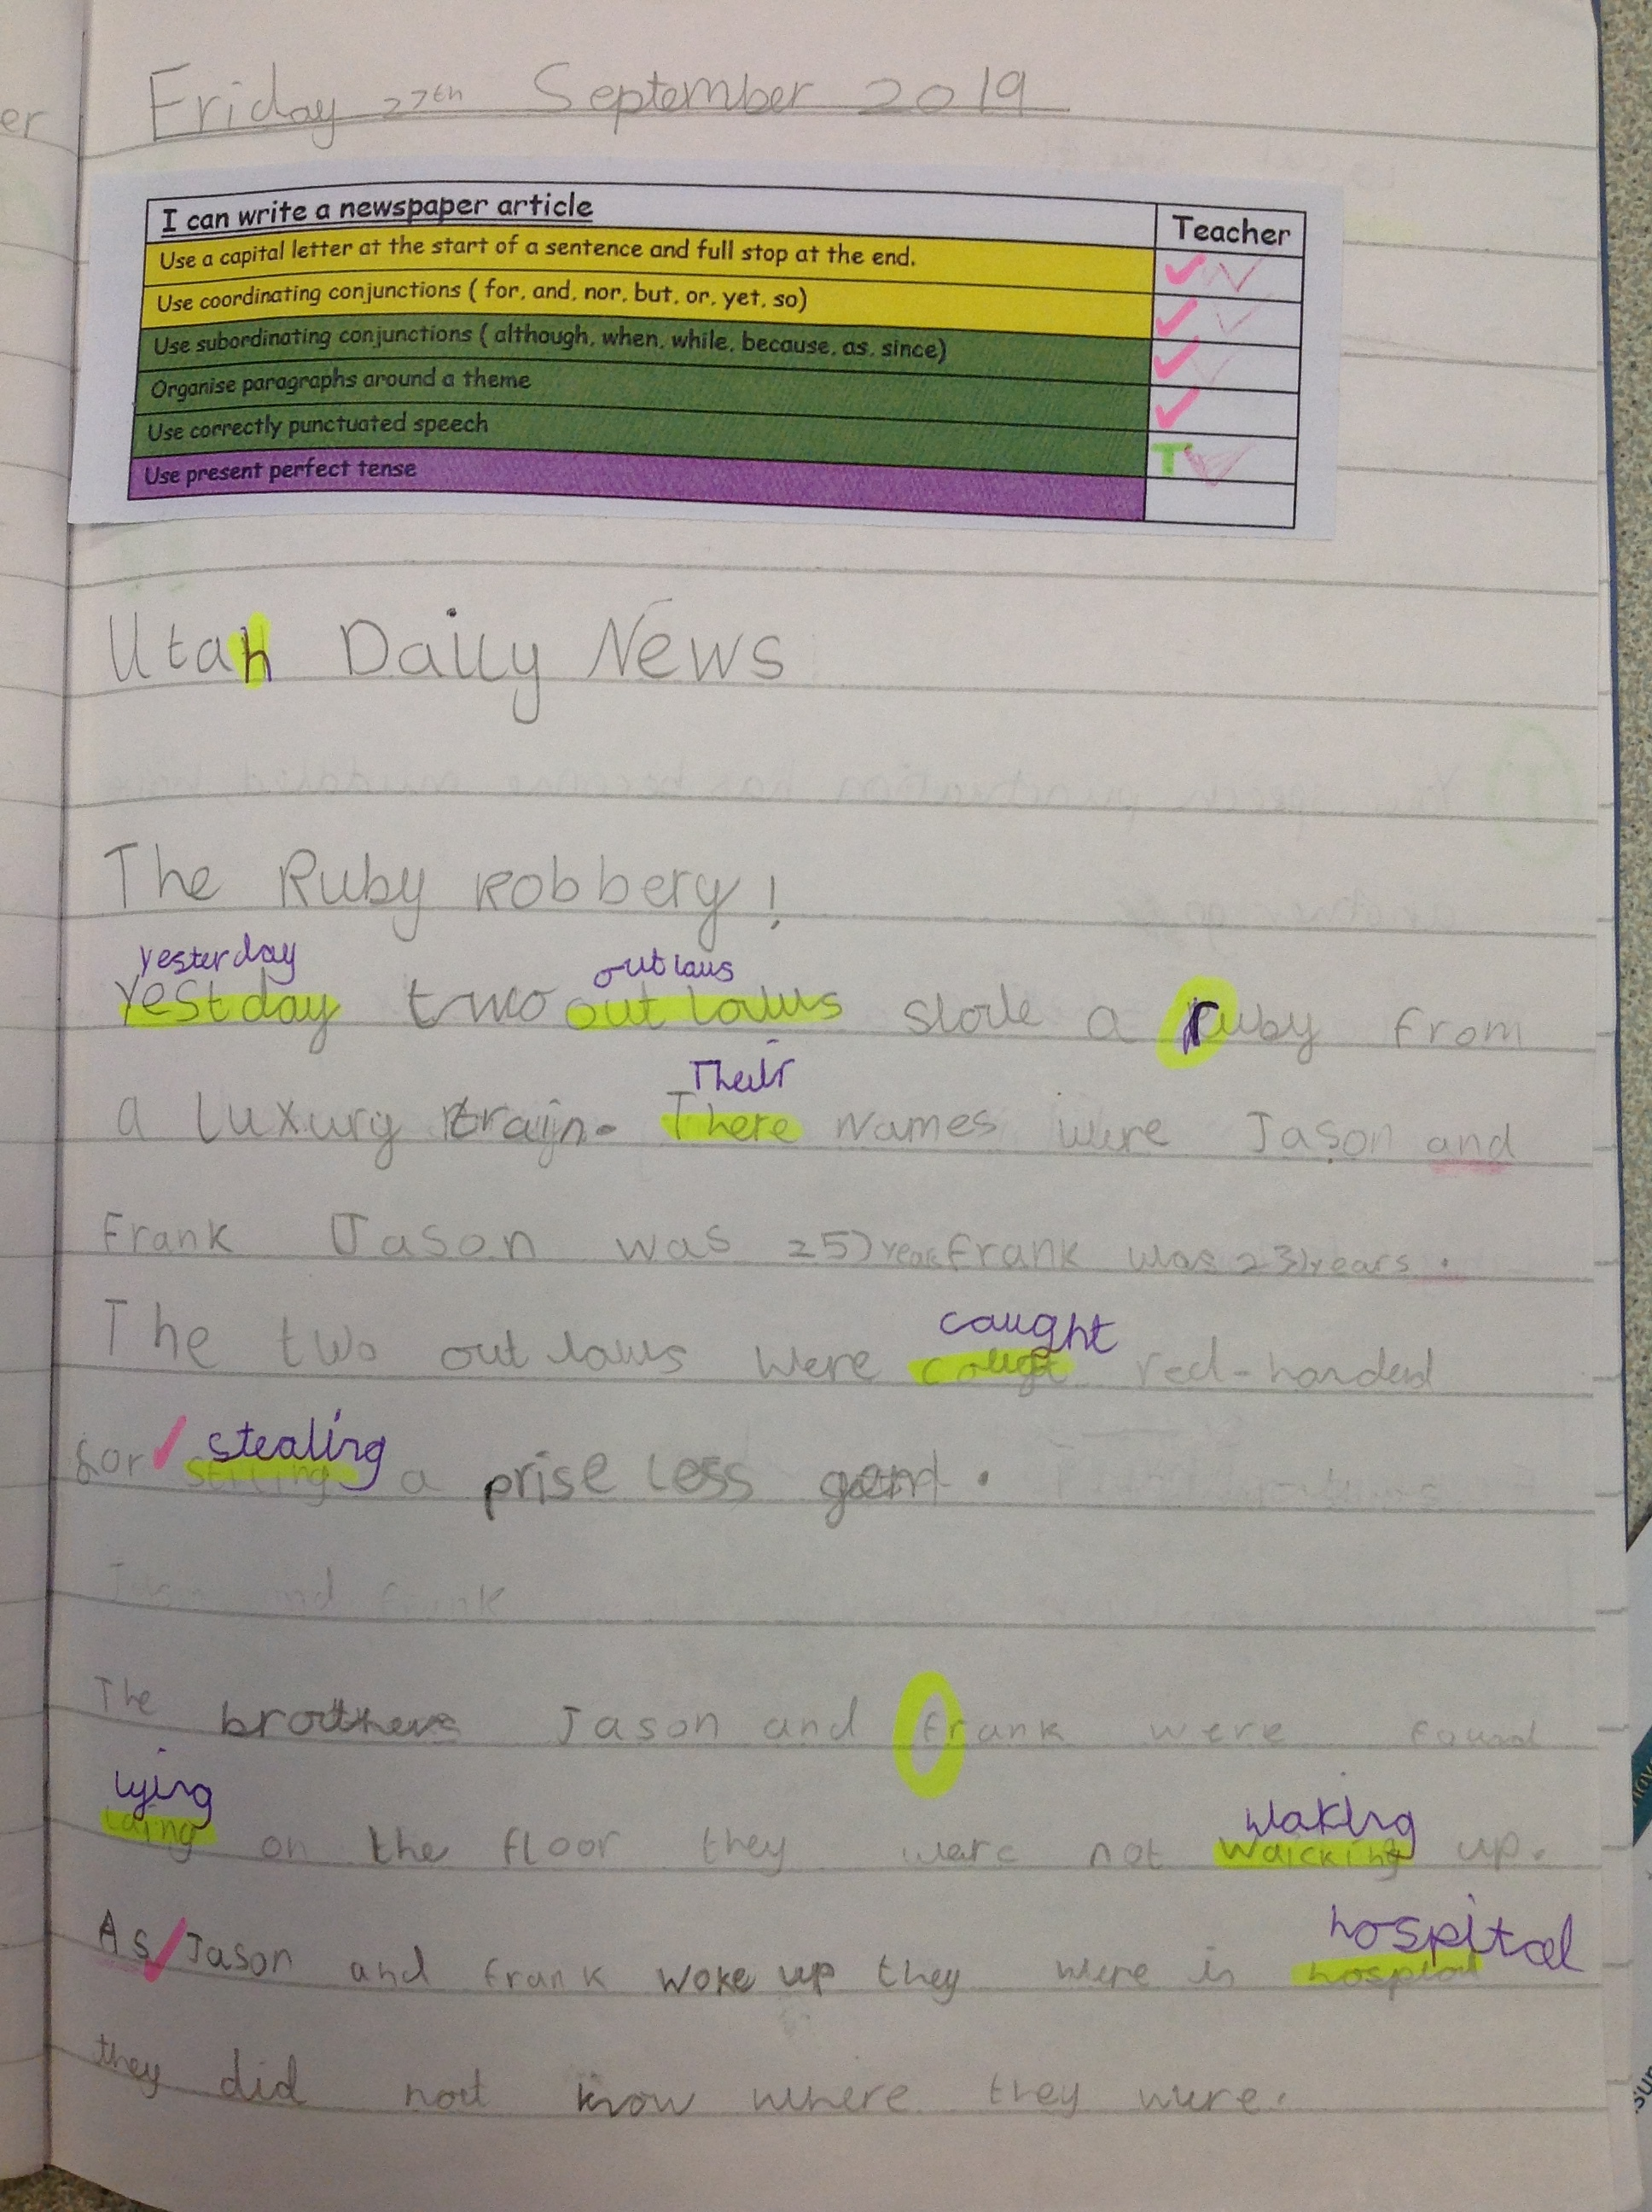 A news report by Evie